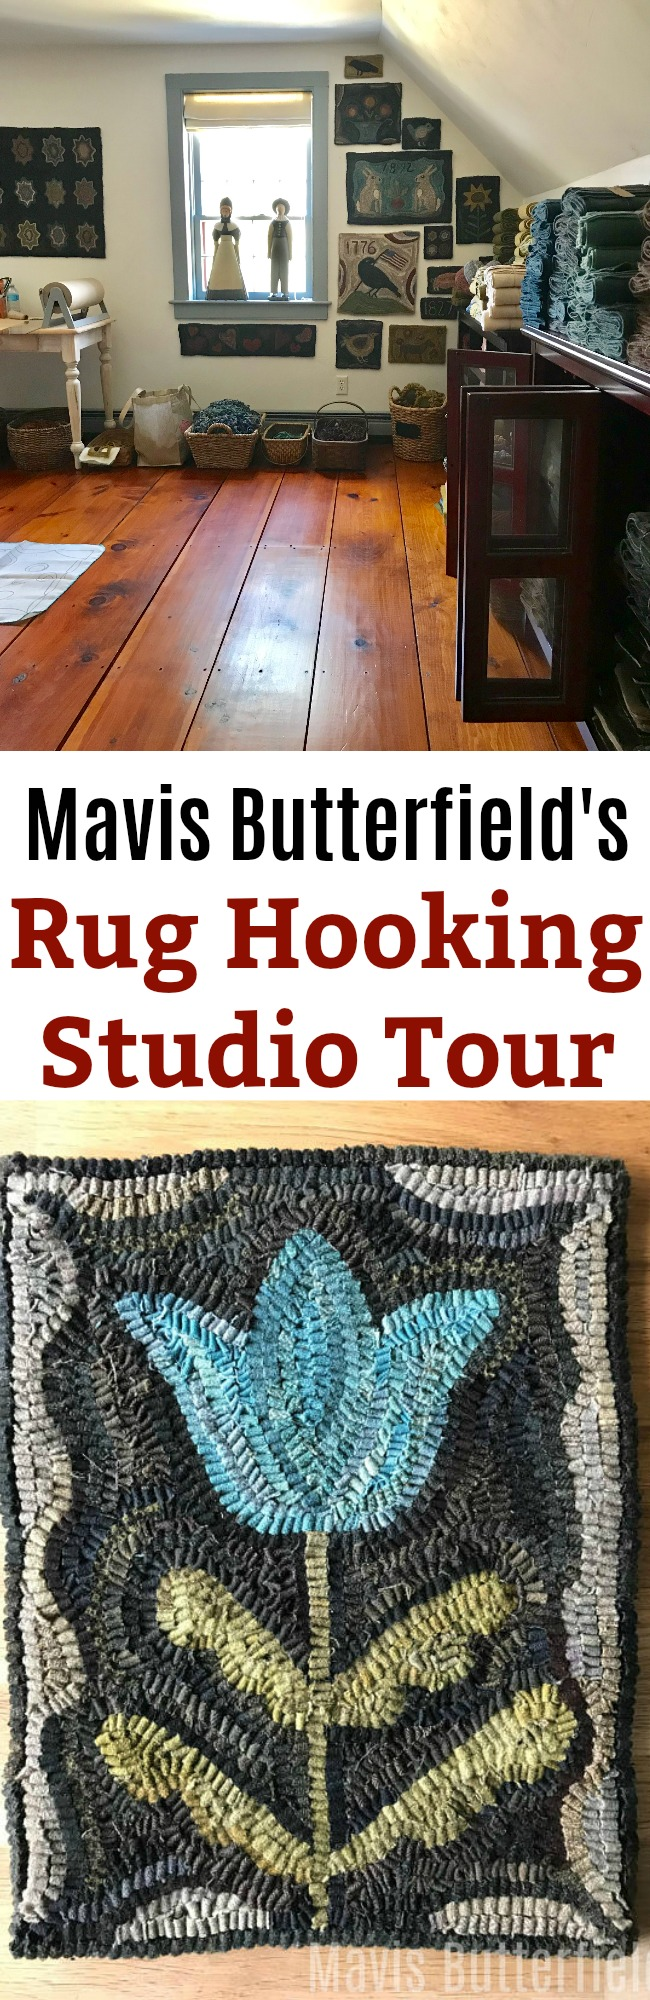 Setting Up My New Rug Hooking and Wool Studio Space